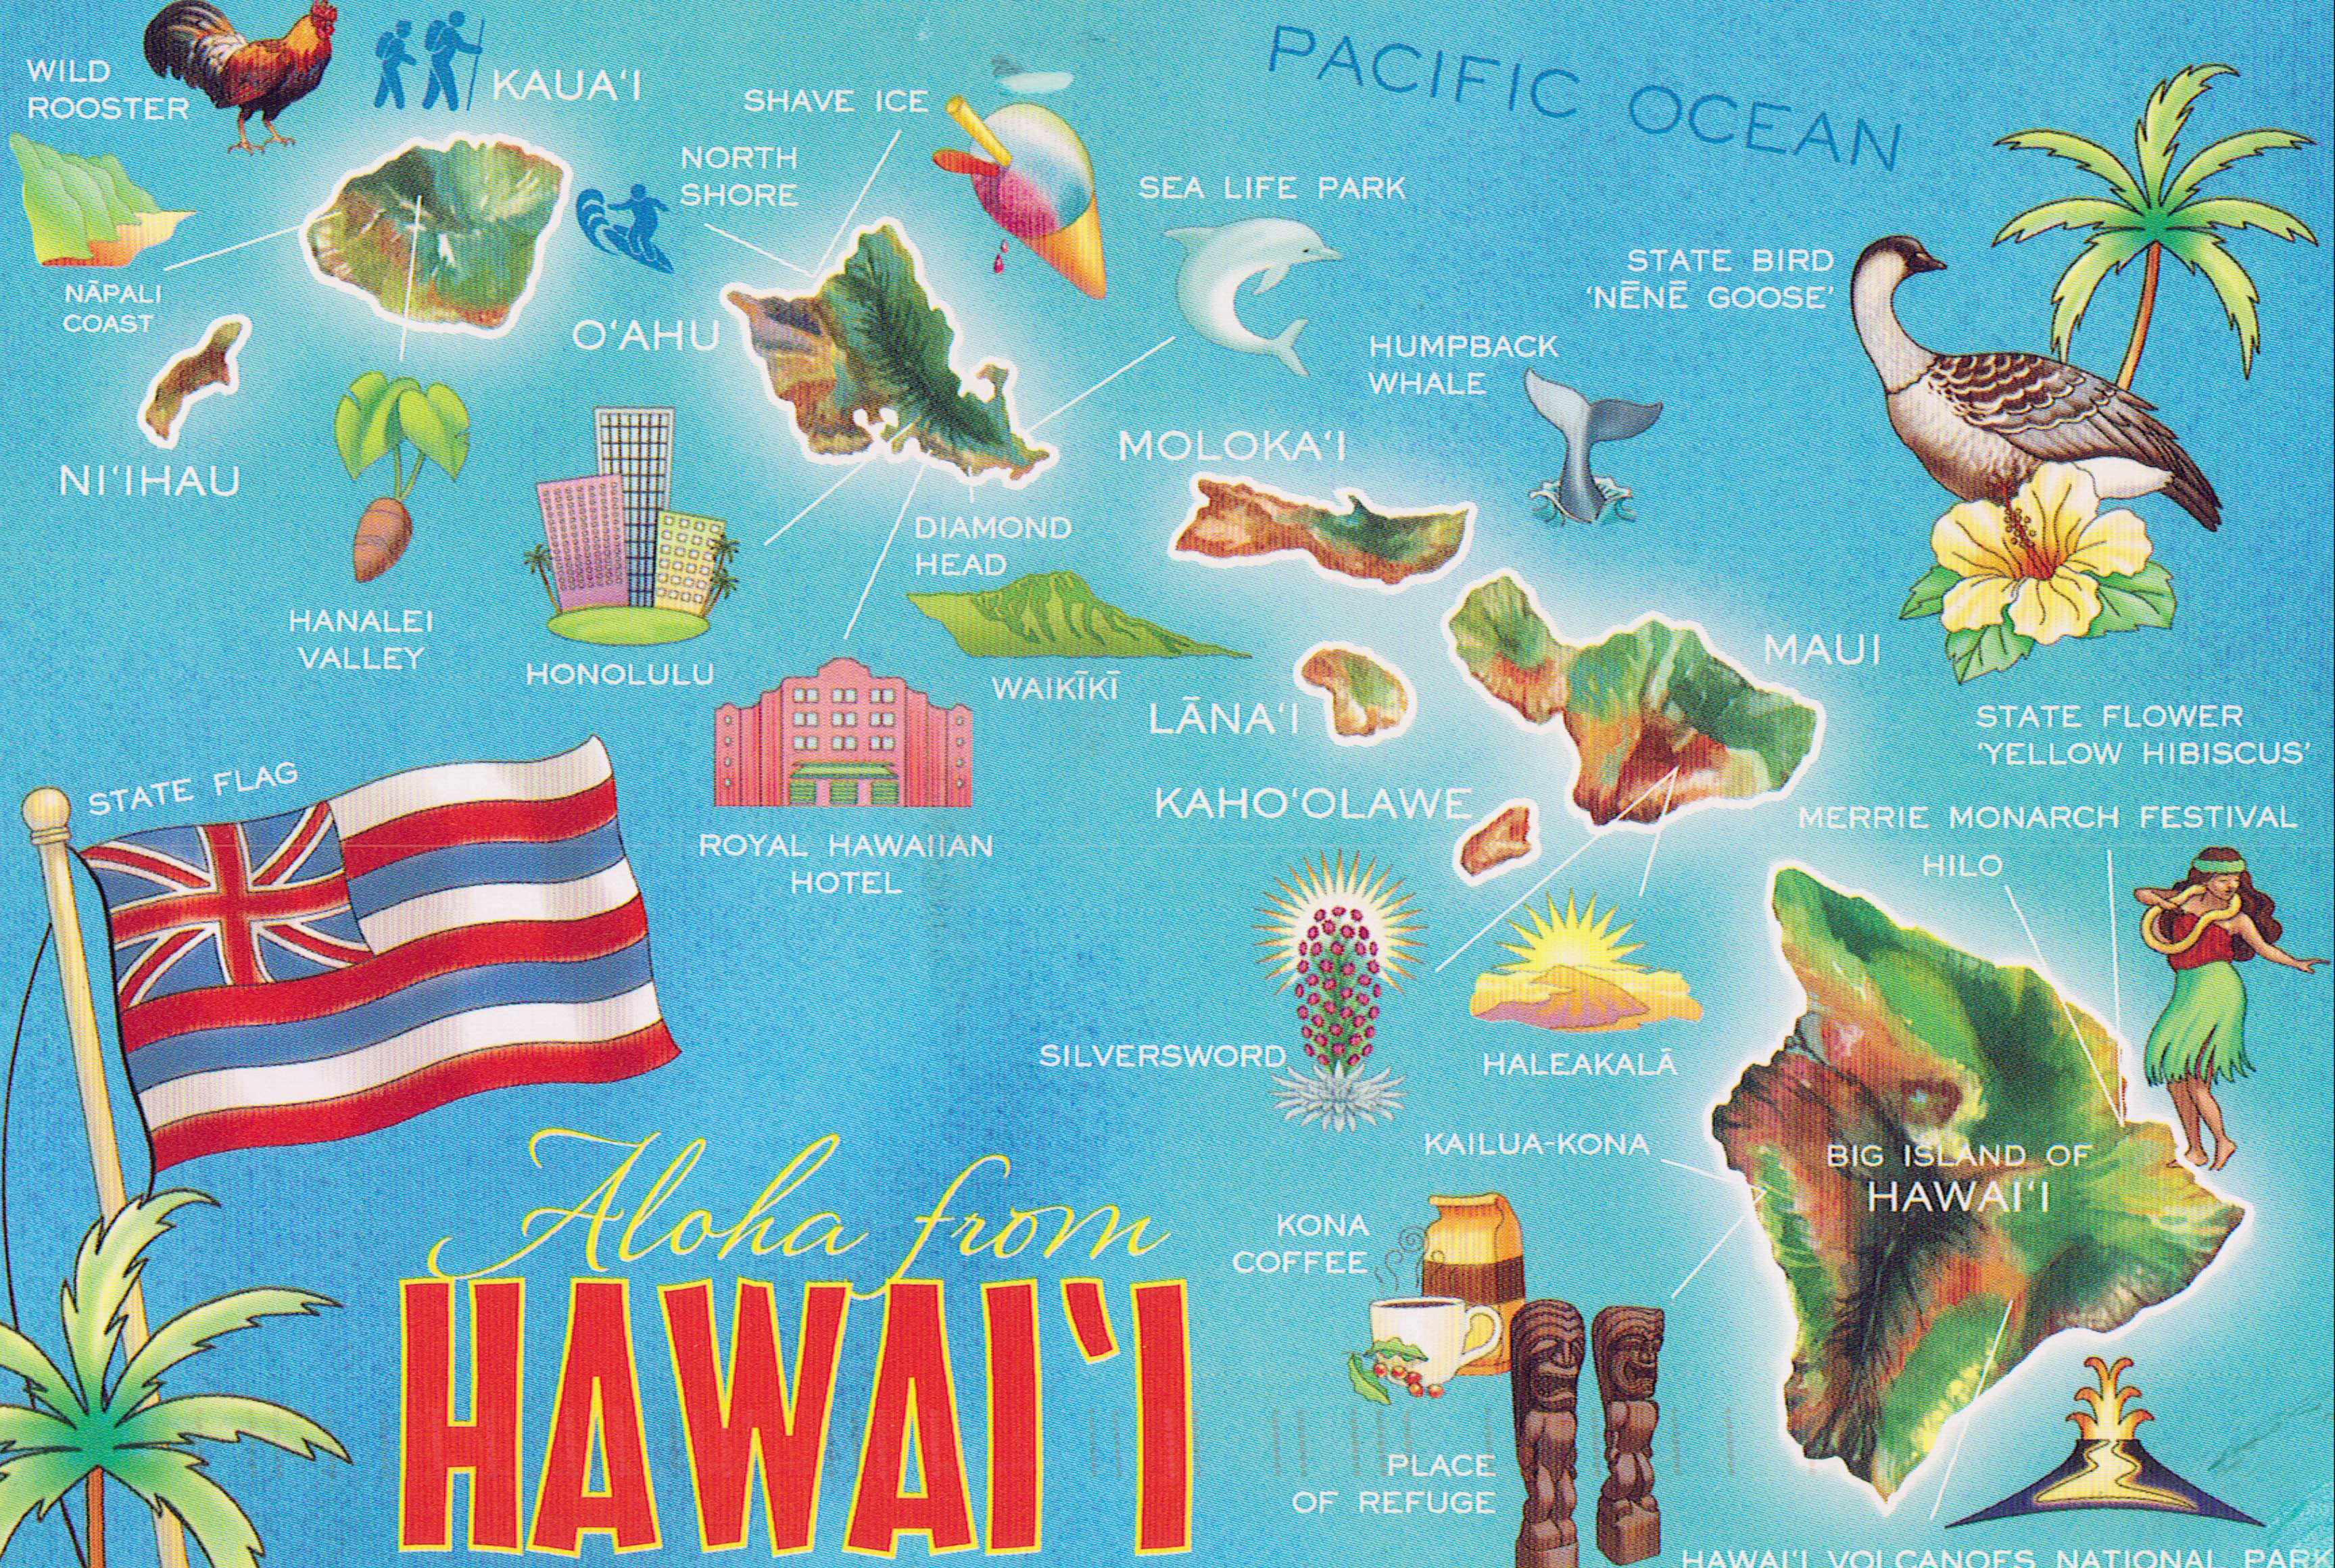 Detailed Tourist Map Of Hawaii Islands Hawaii Islands Detailed - Hawaii map usa states